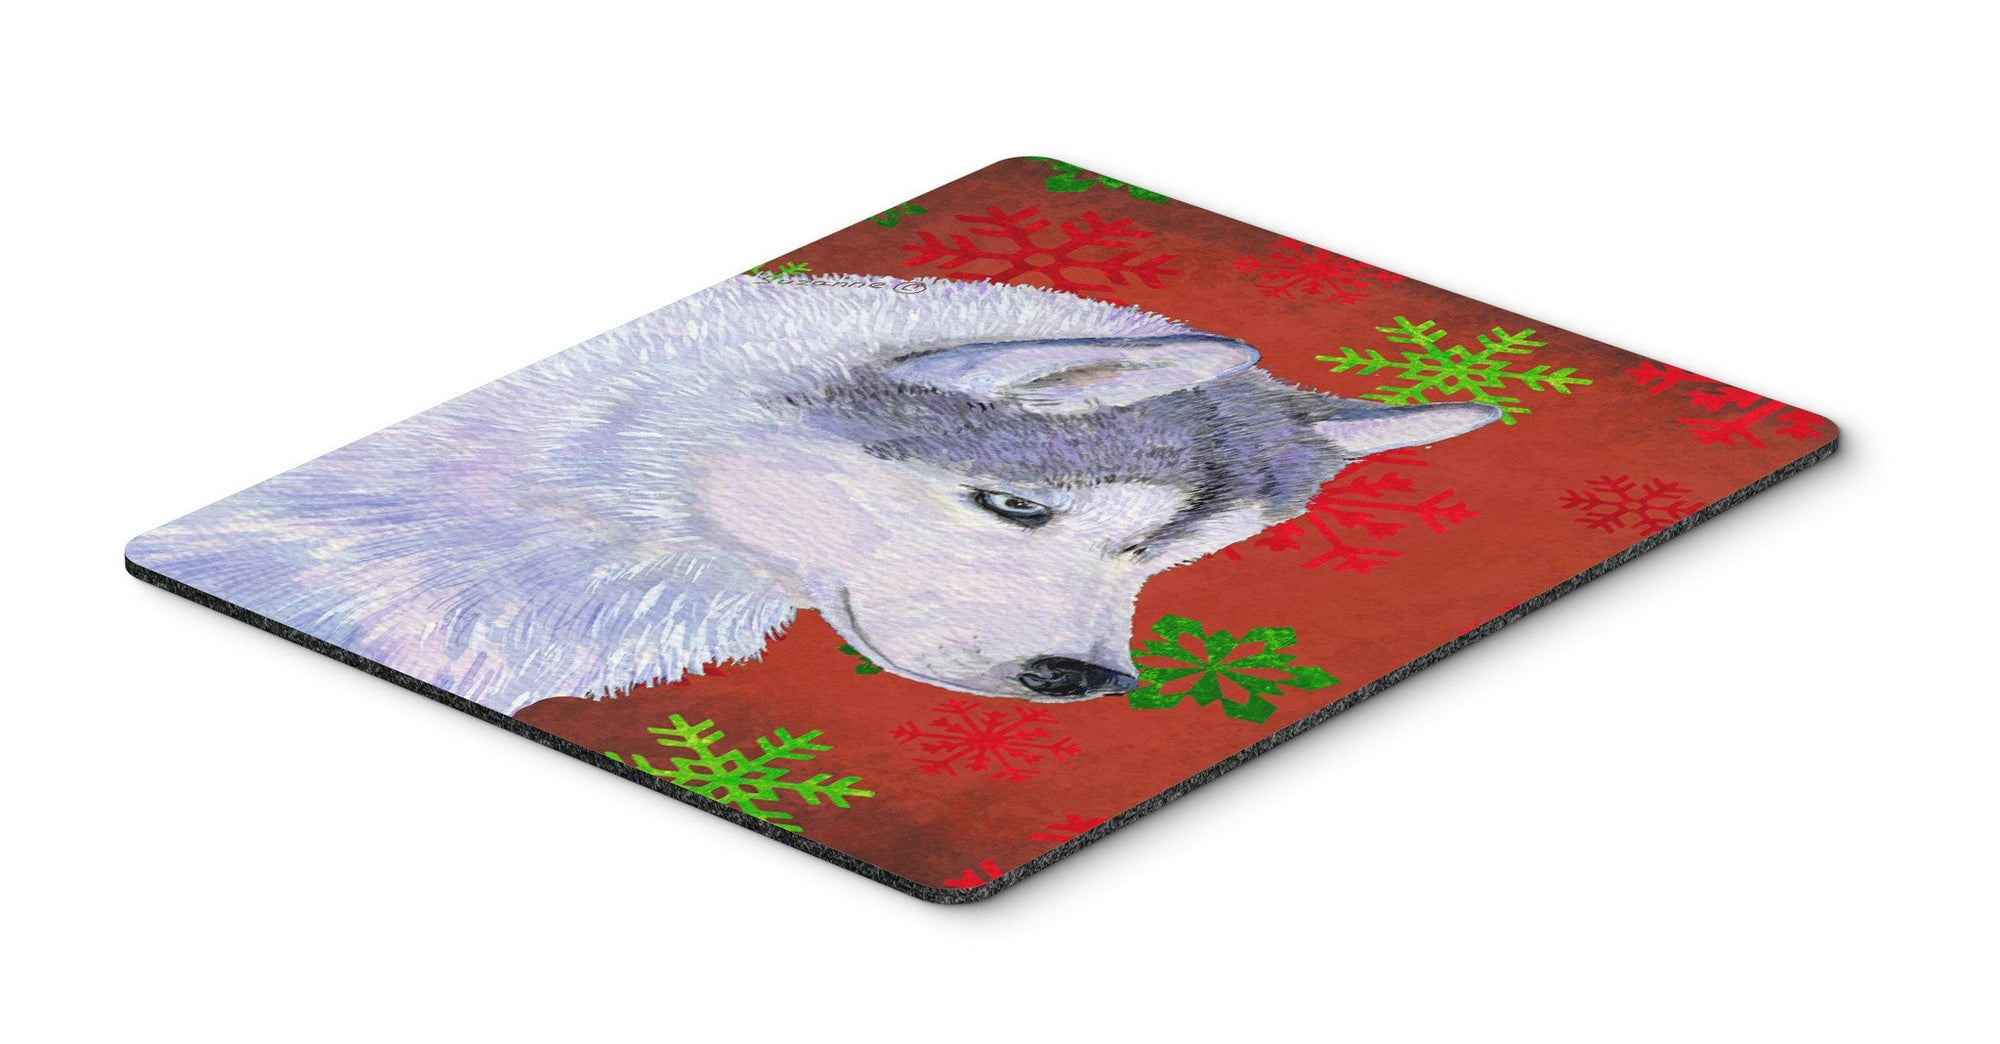 Buy this Siberian Husky Red and Green Snowflakes Christmas Mouse Pad, Hot Pad or Trivet